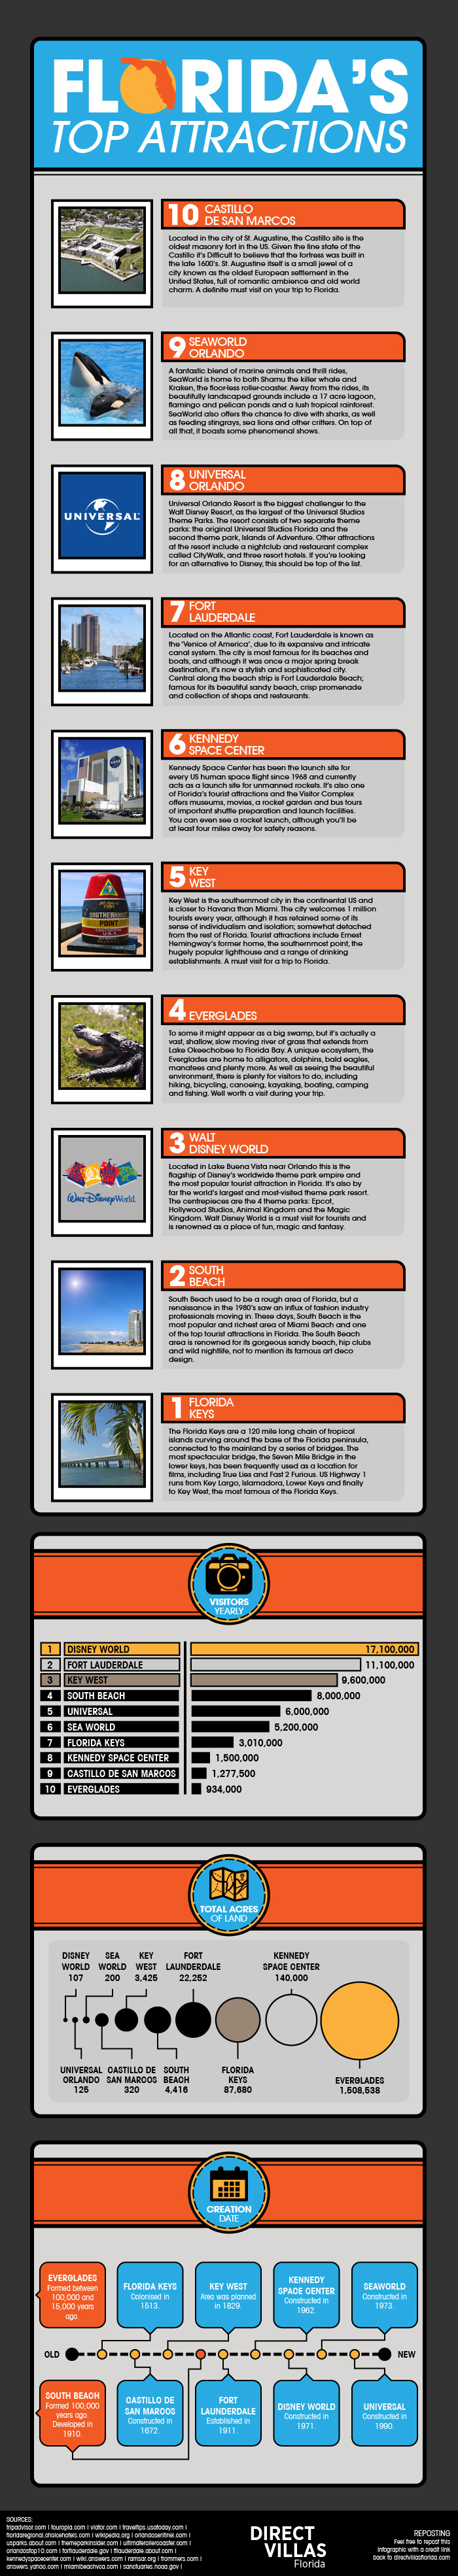 Florida's Top Attractions